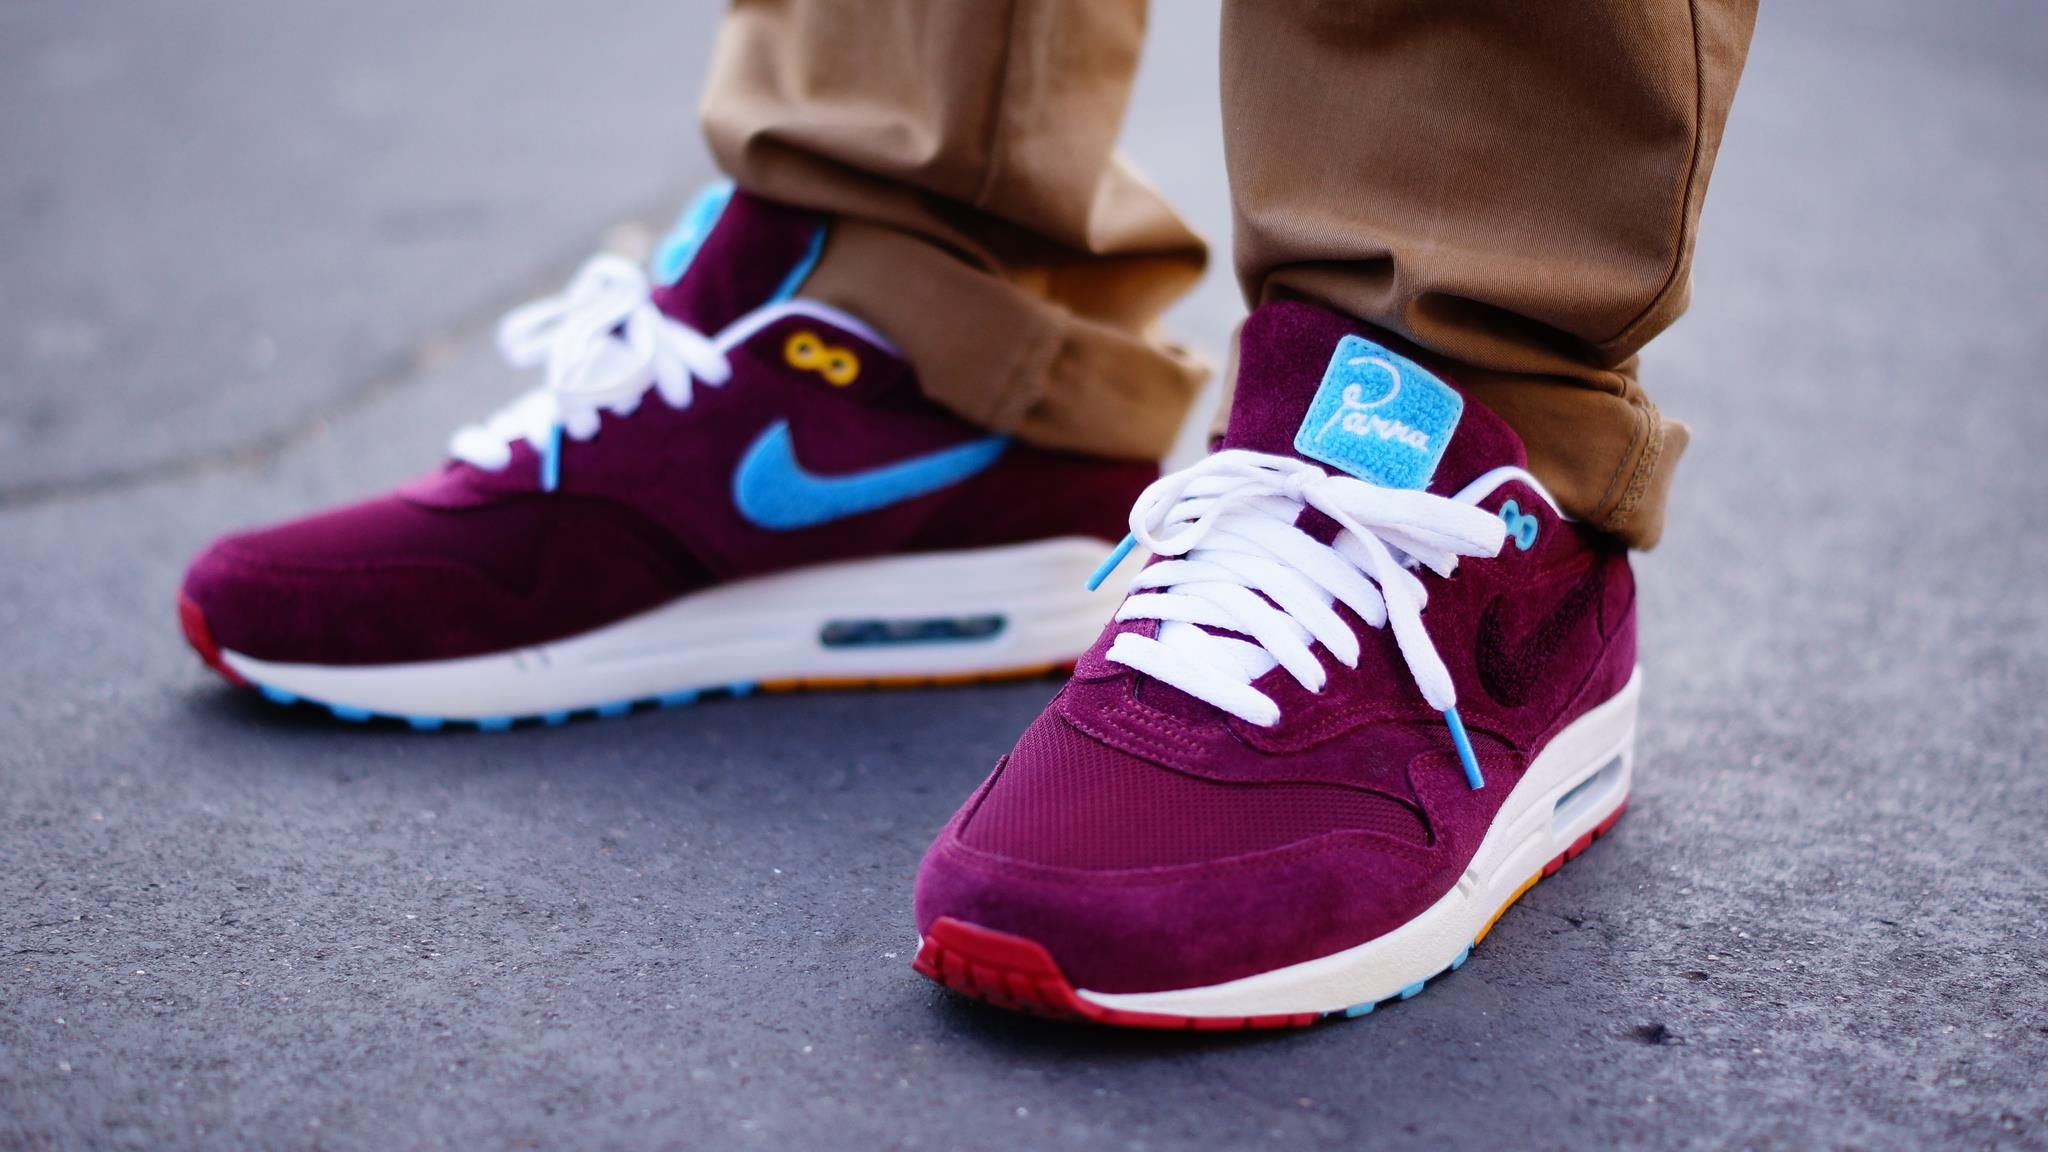 73a8bbf0bd32a0 Buy air max 1 patta x parra   62% off!